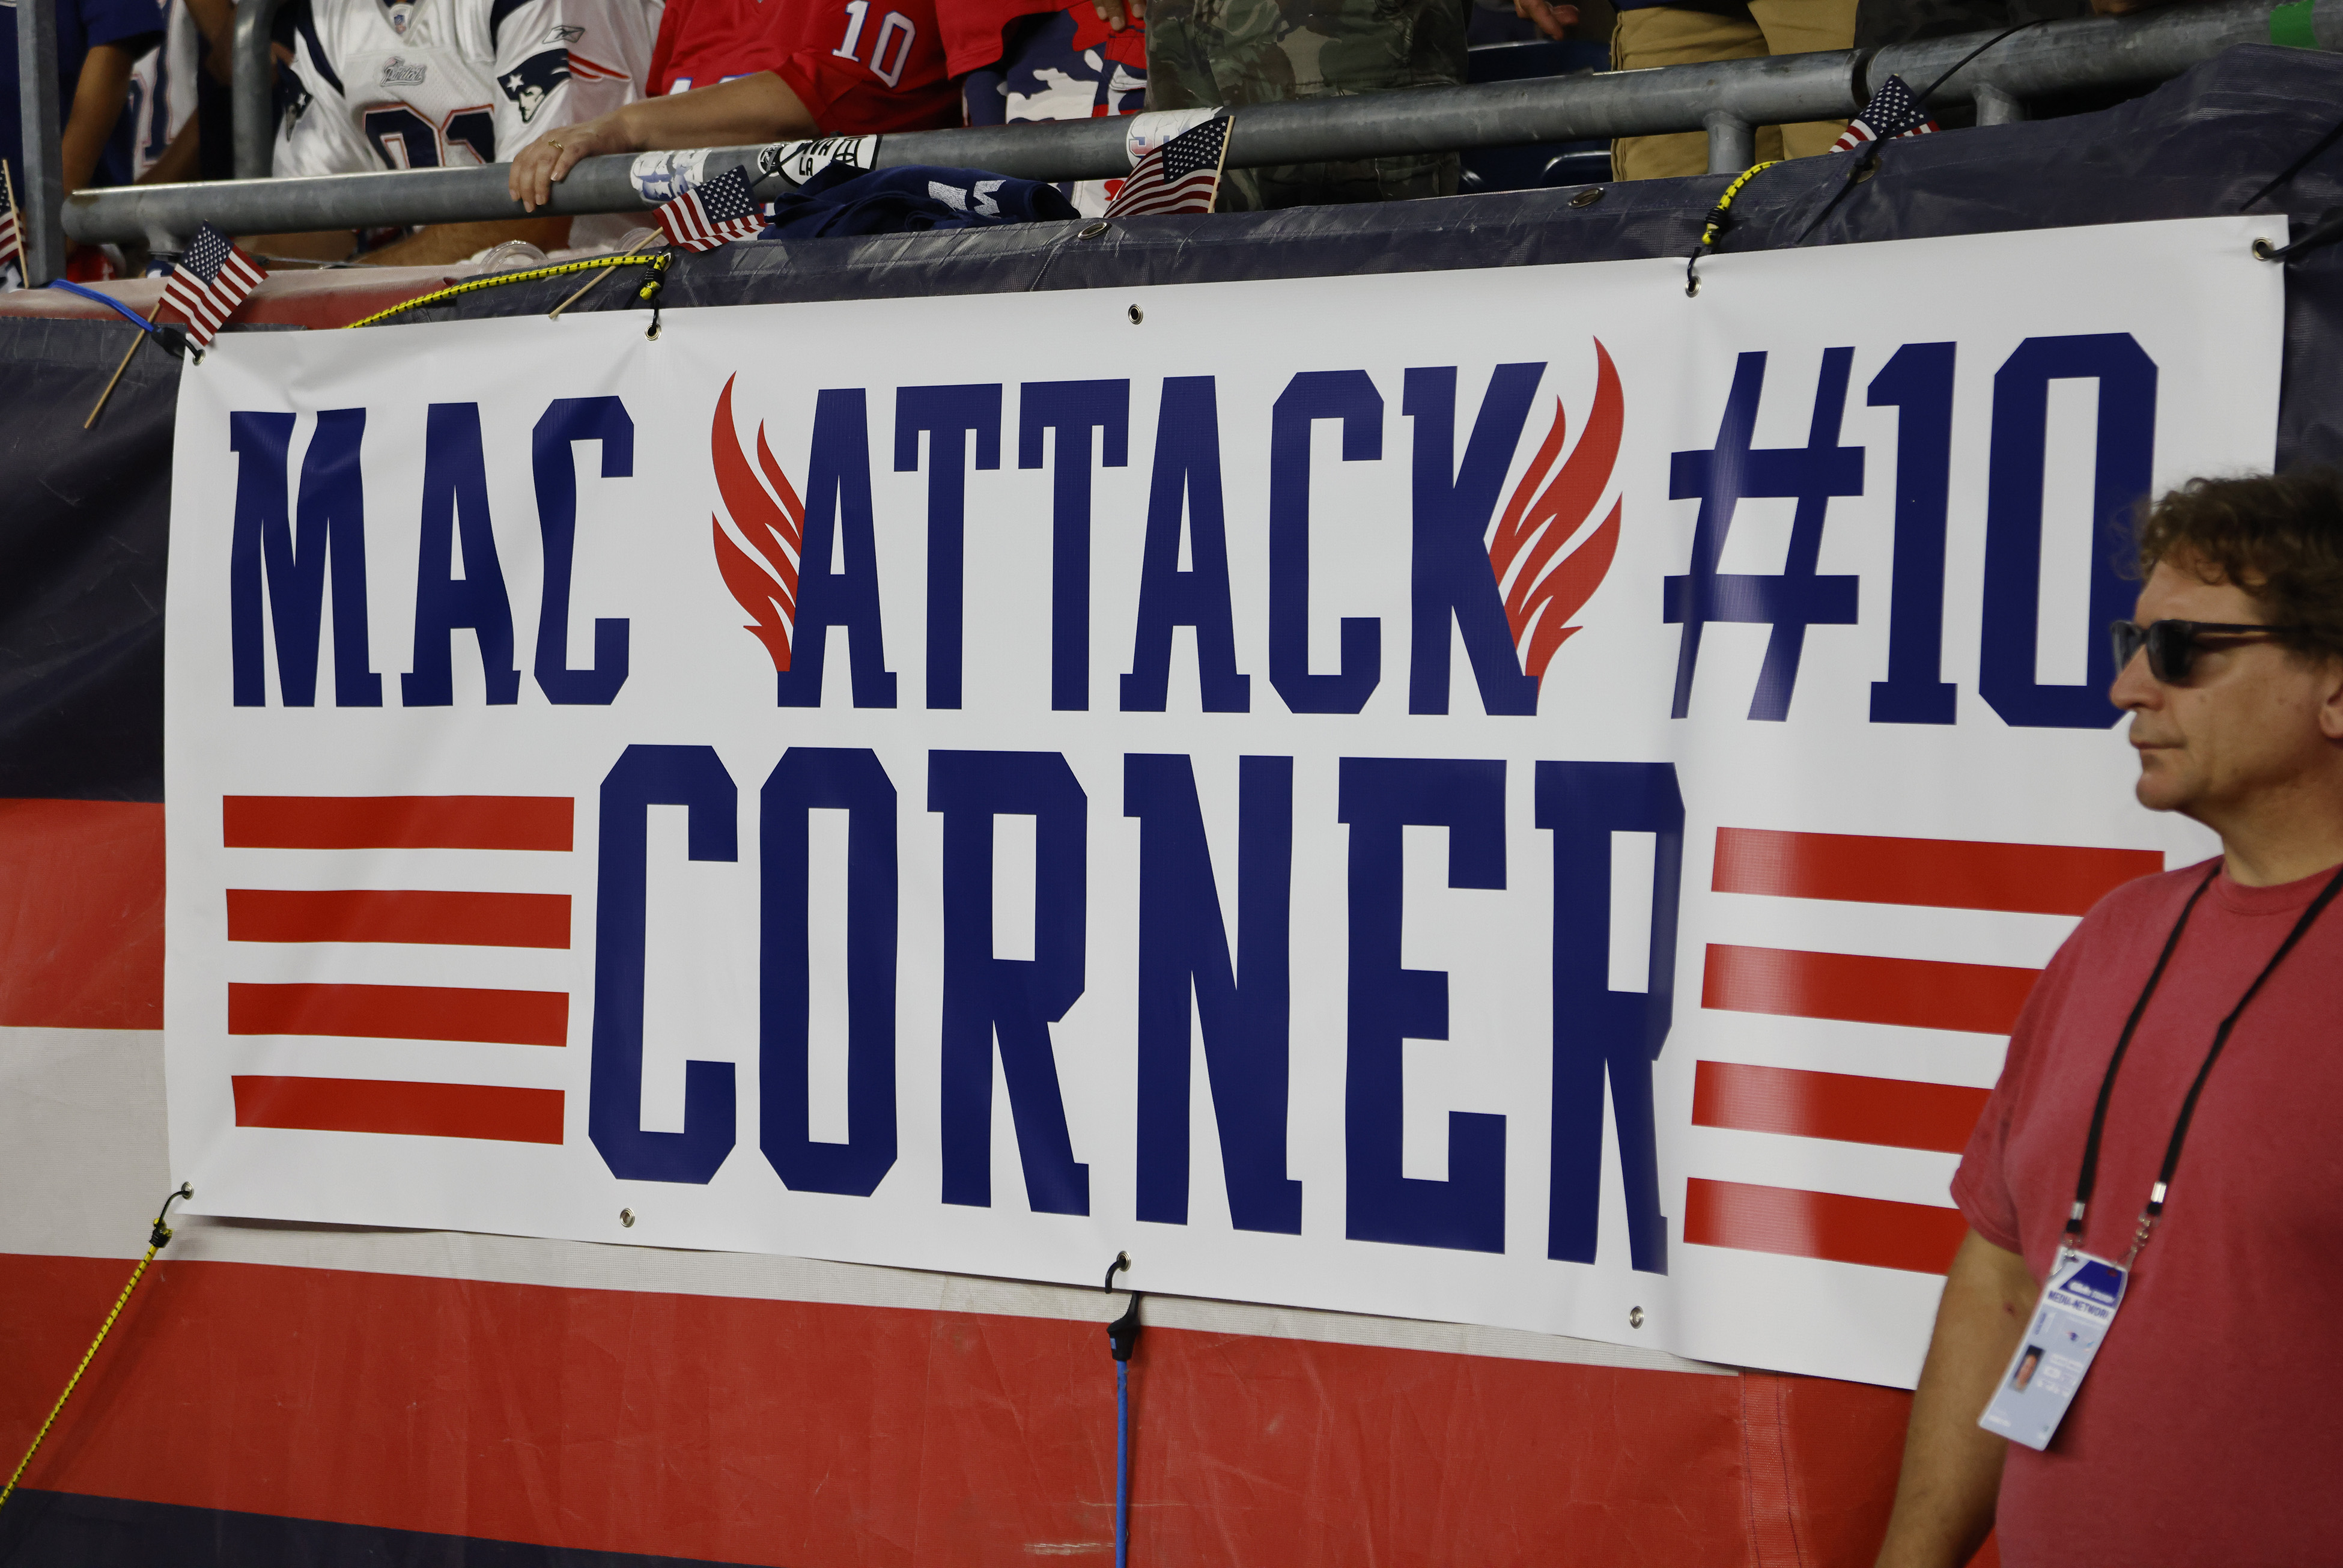 The Mac corner during a game between the New England Patriots and the Miami Dolphins on September 12, 2021, at Gillette Stadium in Foxborough, Massachusetts.